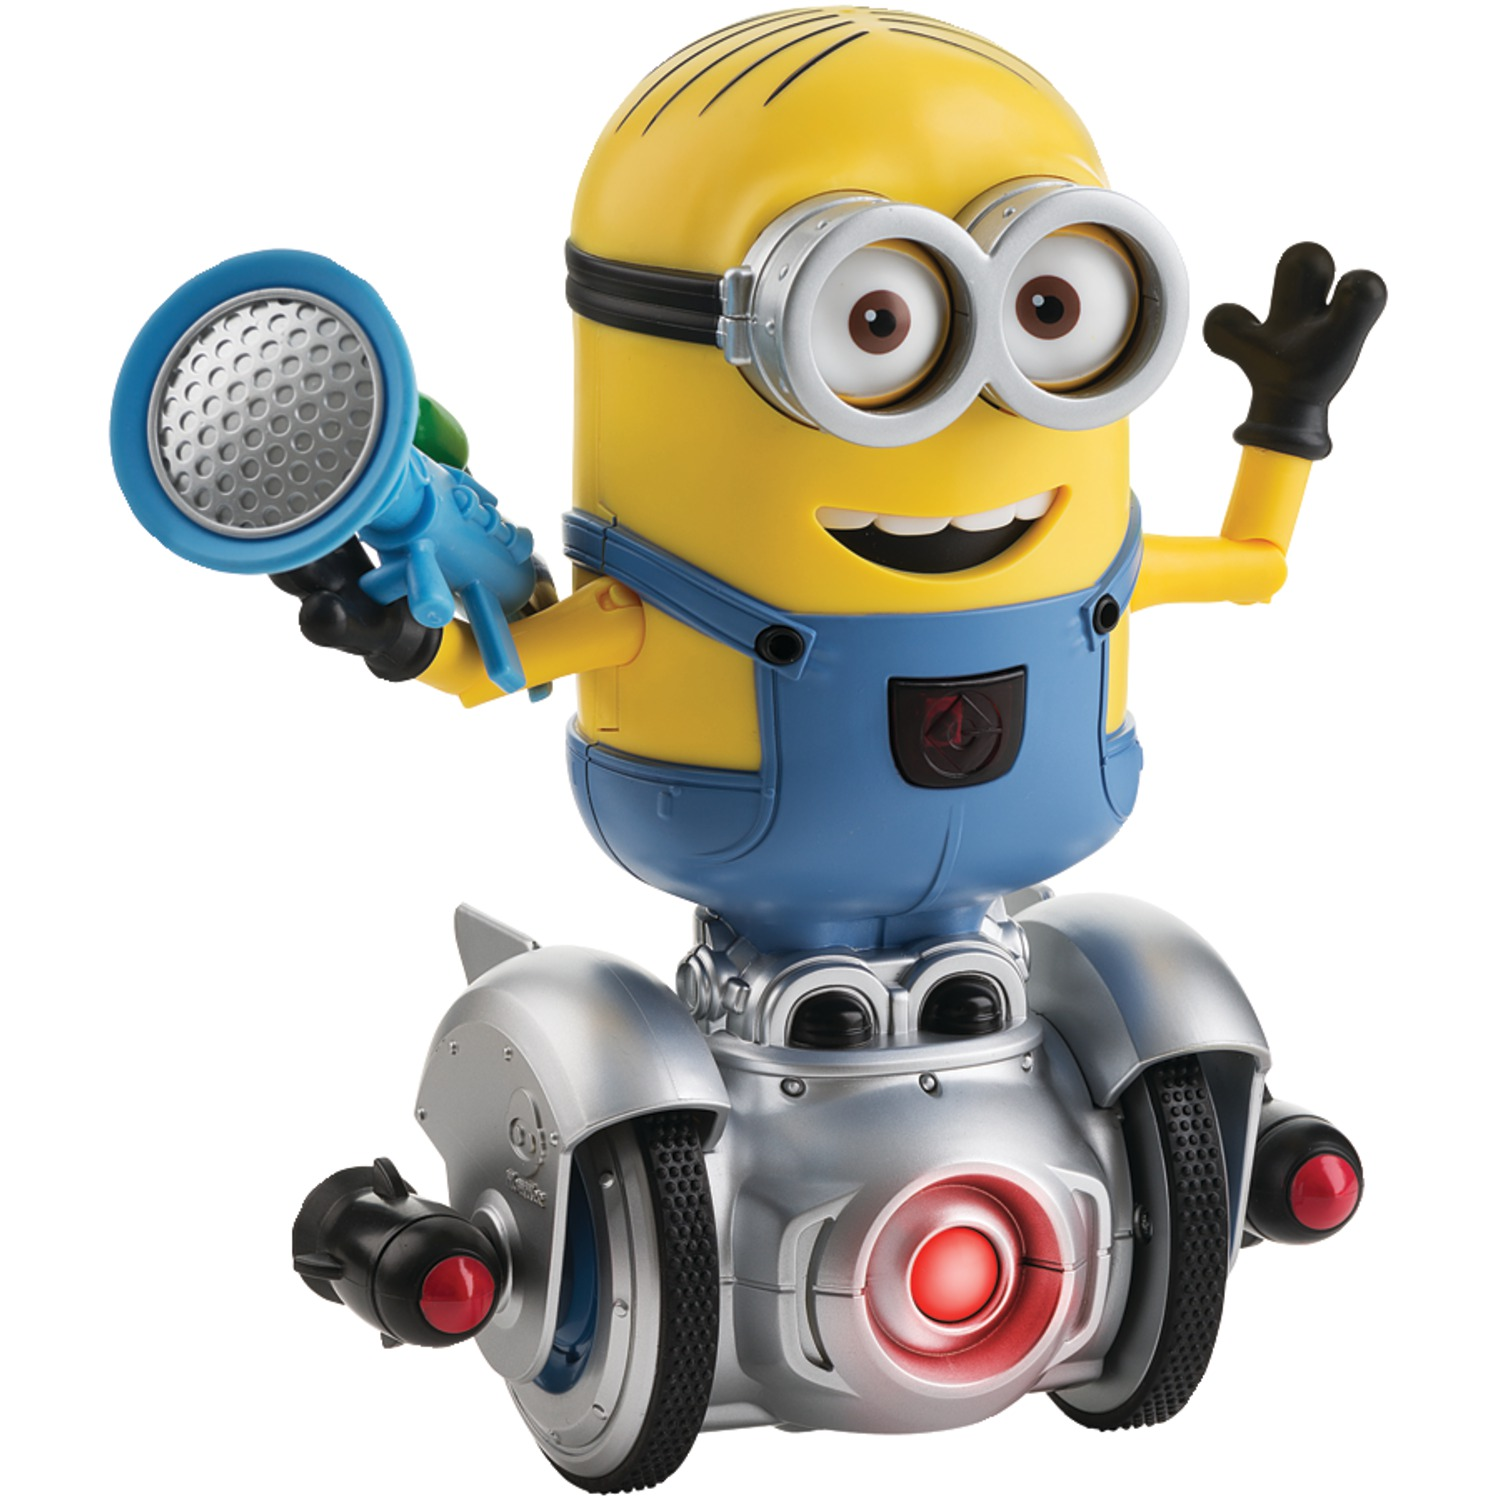 Minion MiP Turbo Dave Robot by WowWee